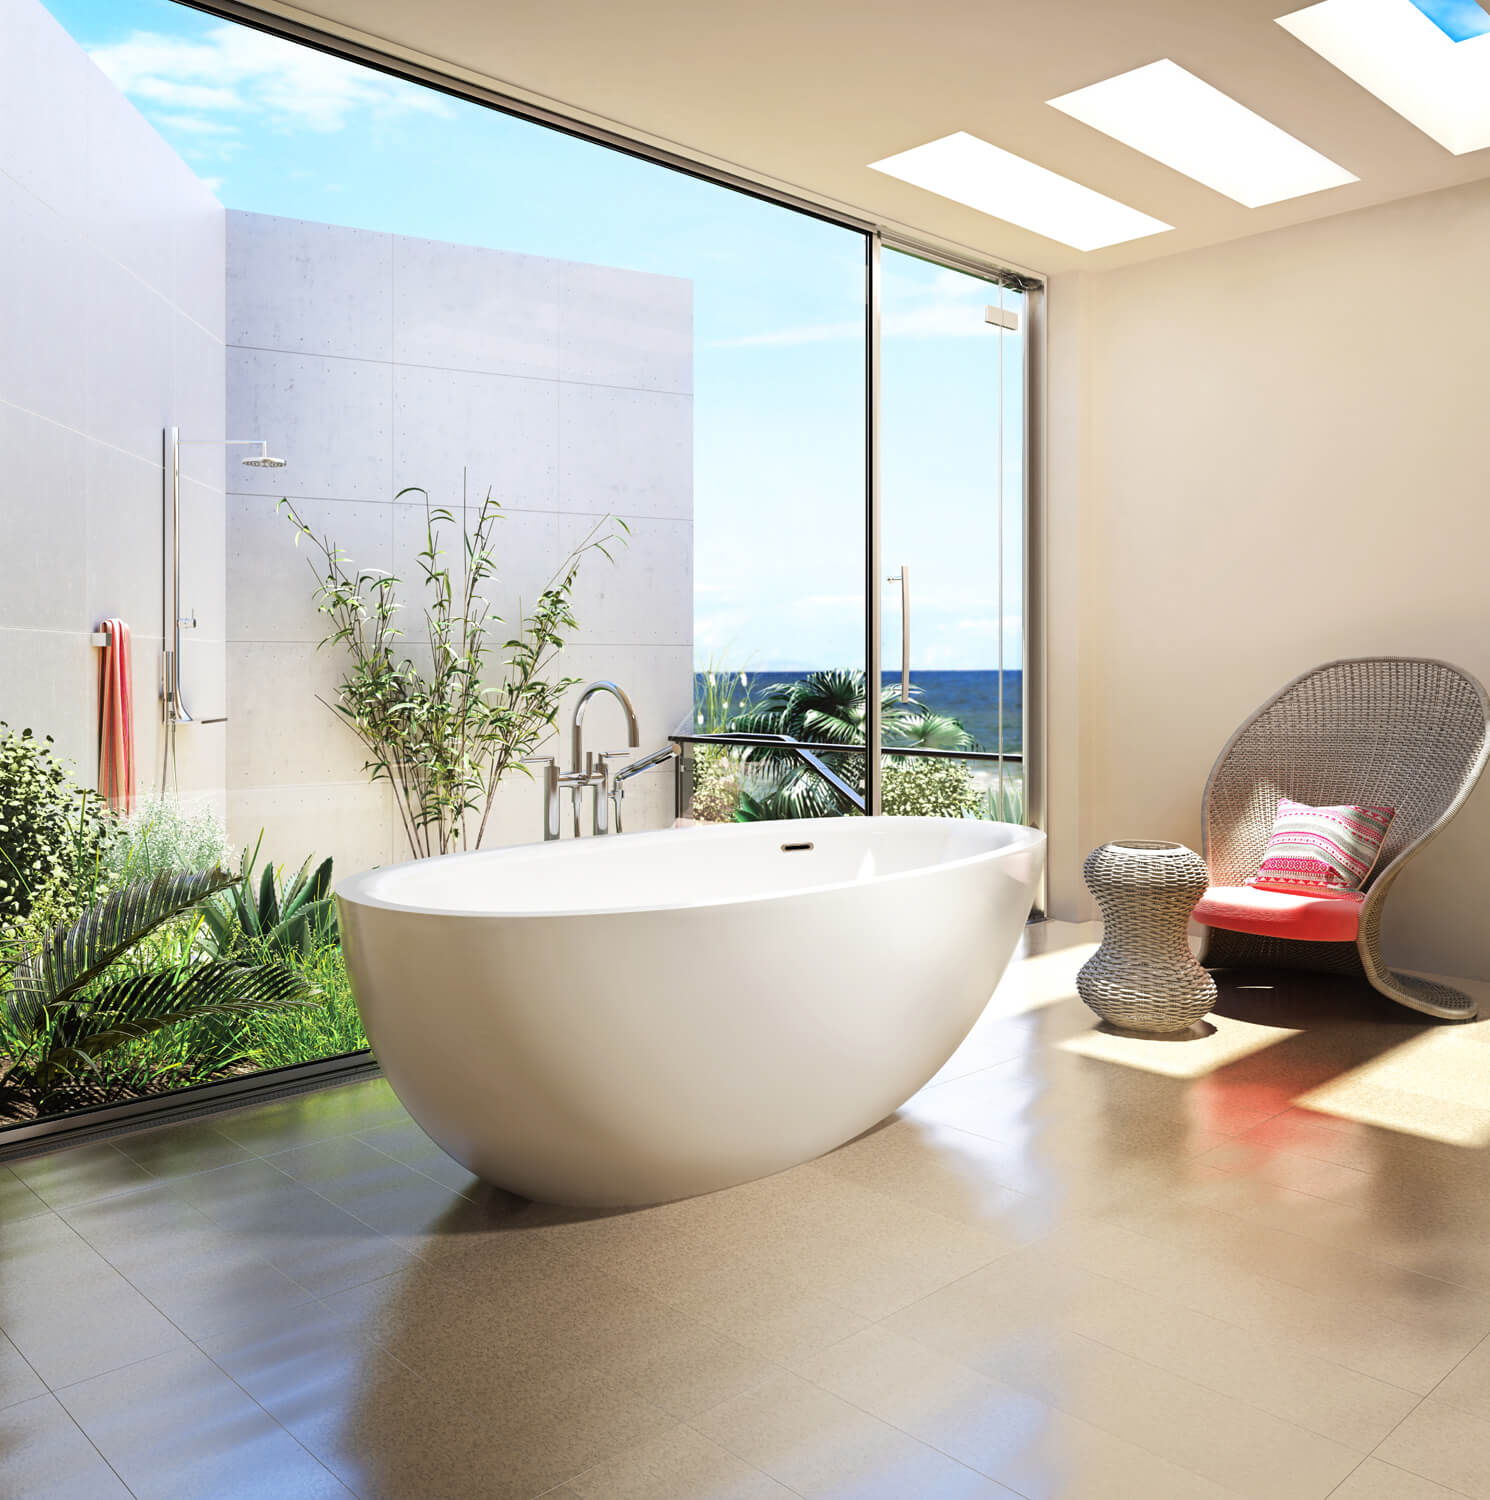 Freestanding air jet tub for your bathroom | BainUltra Essencia ...